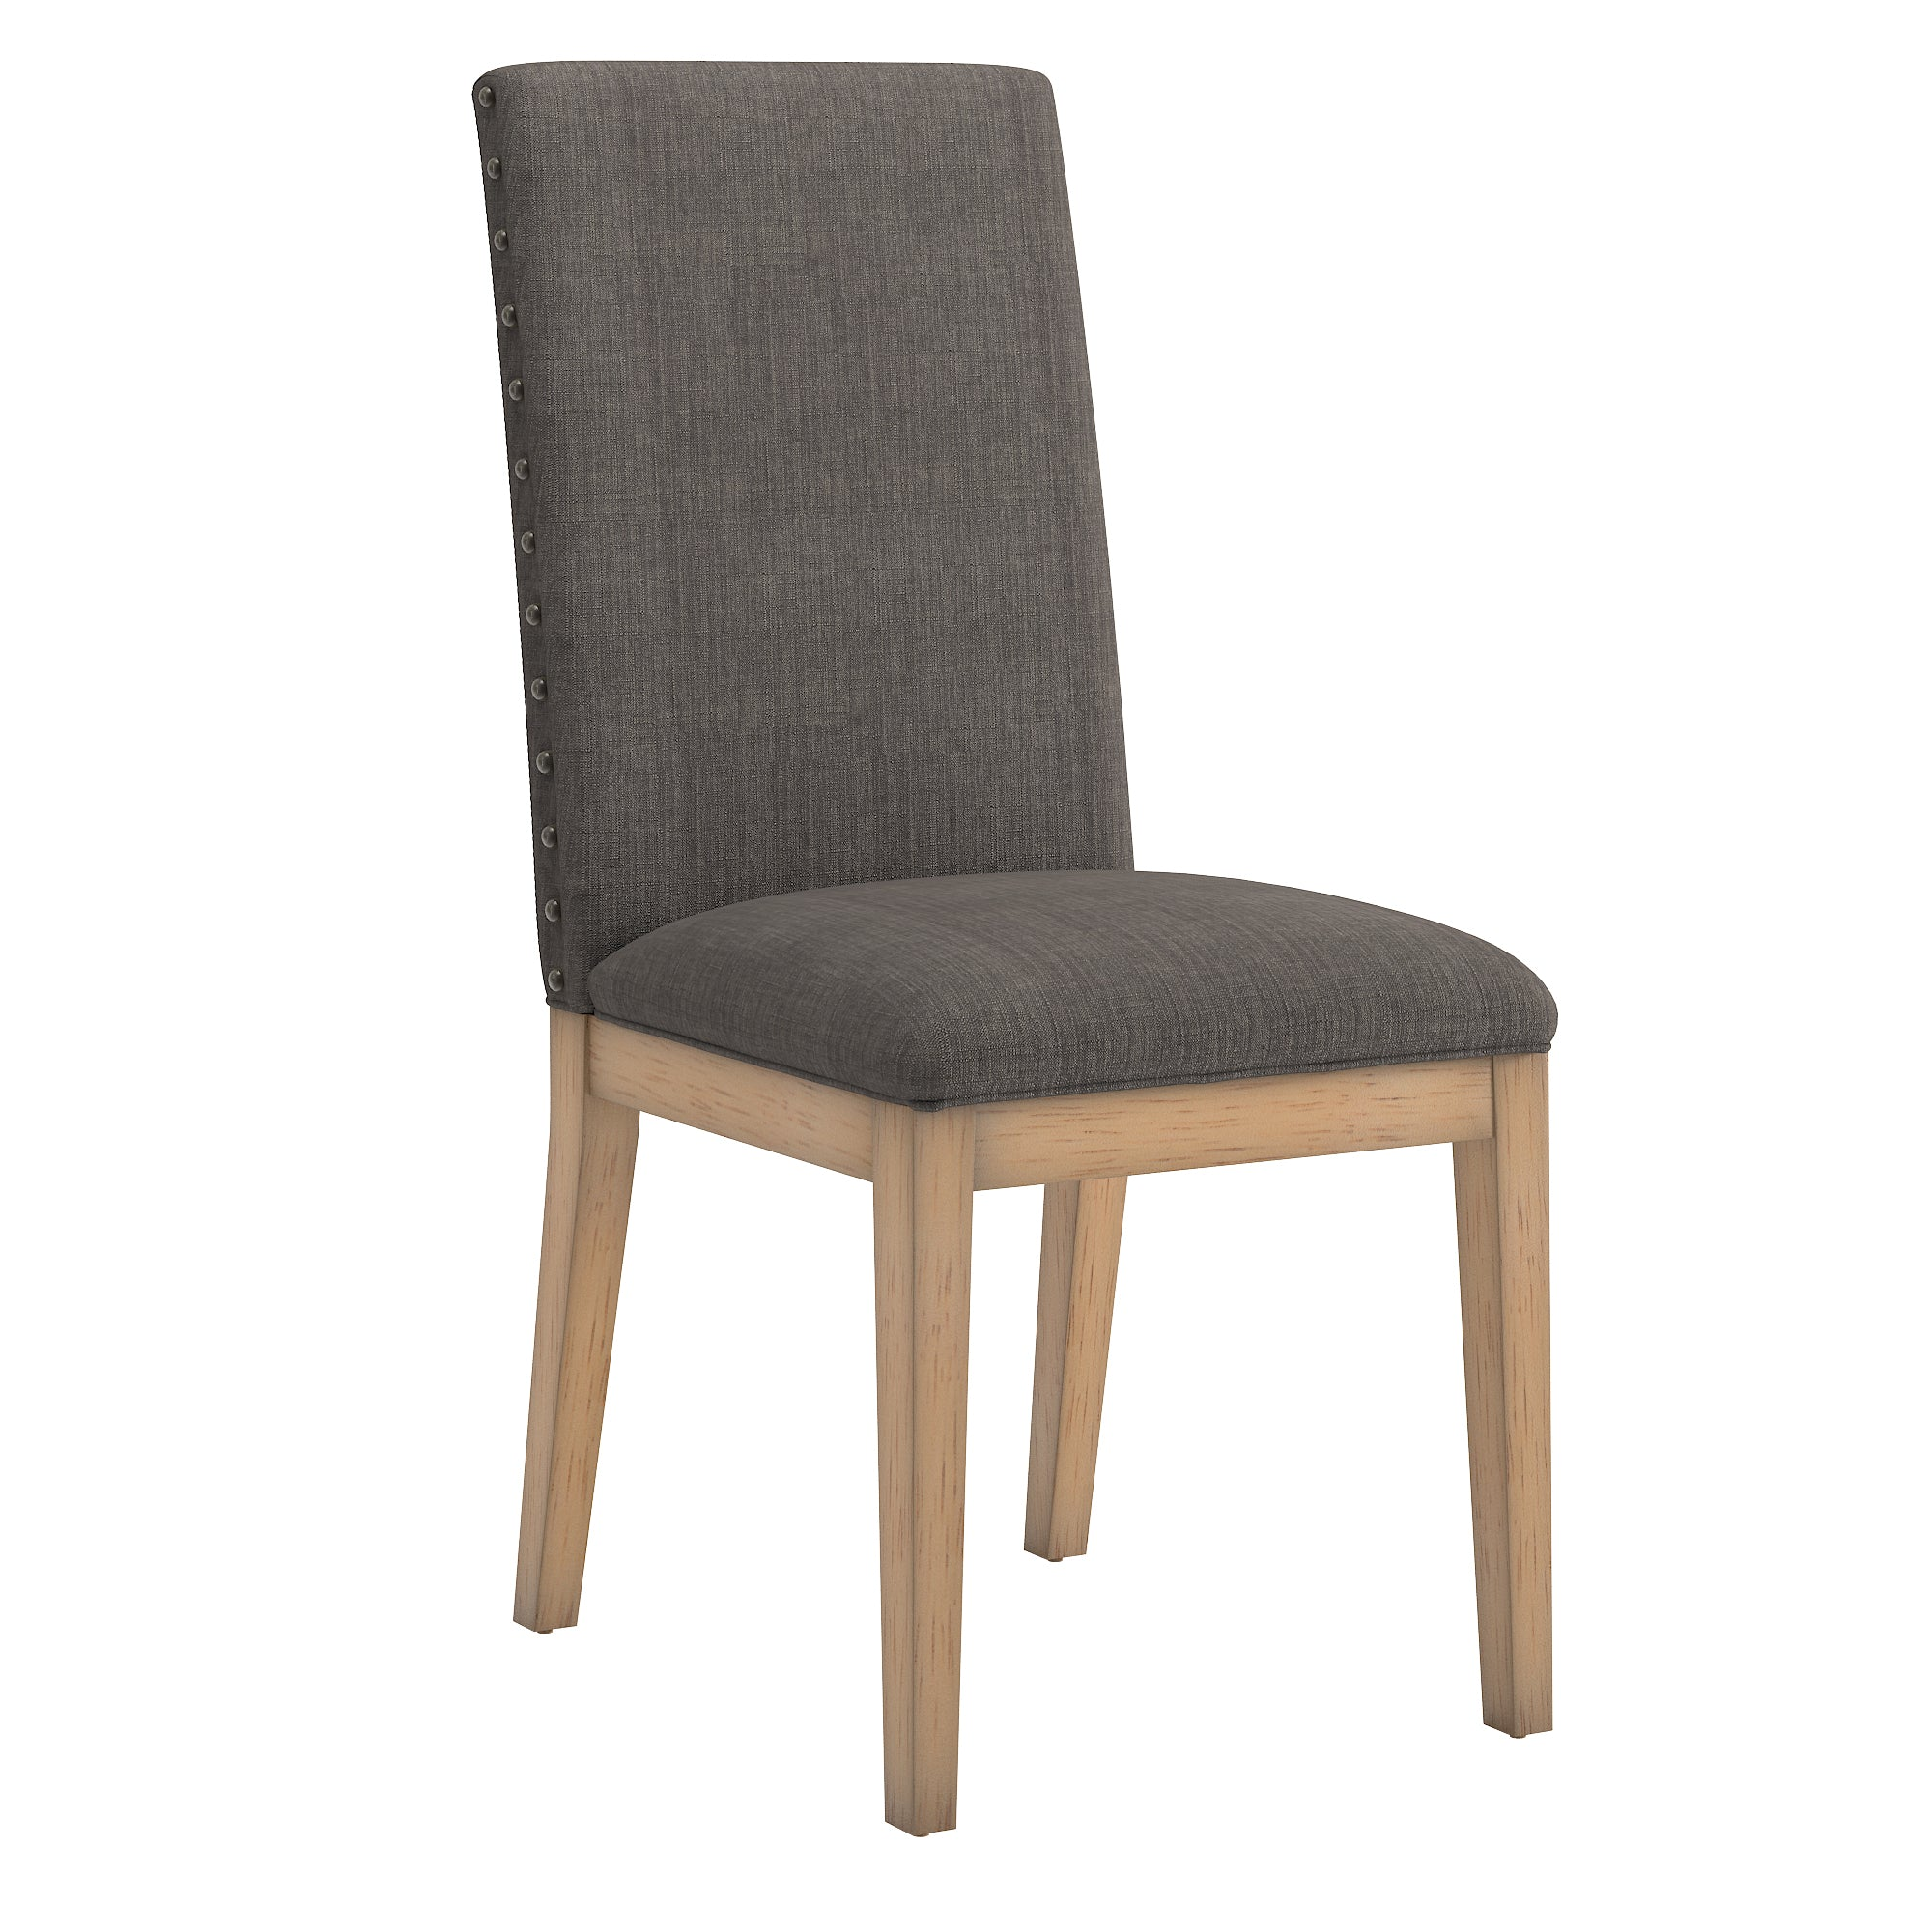 Nailhead Accent Parson Linen Dining Chair (Set of 2) - Charcoal